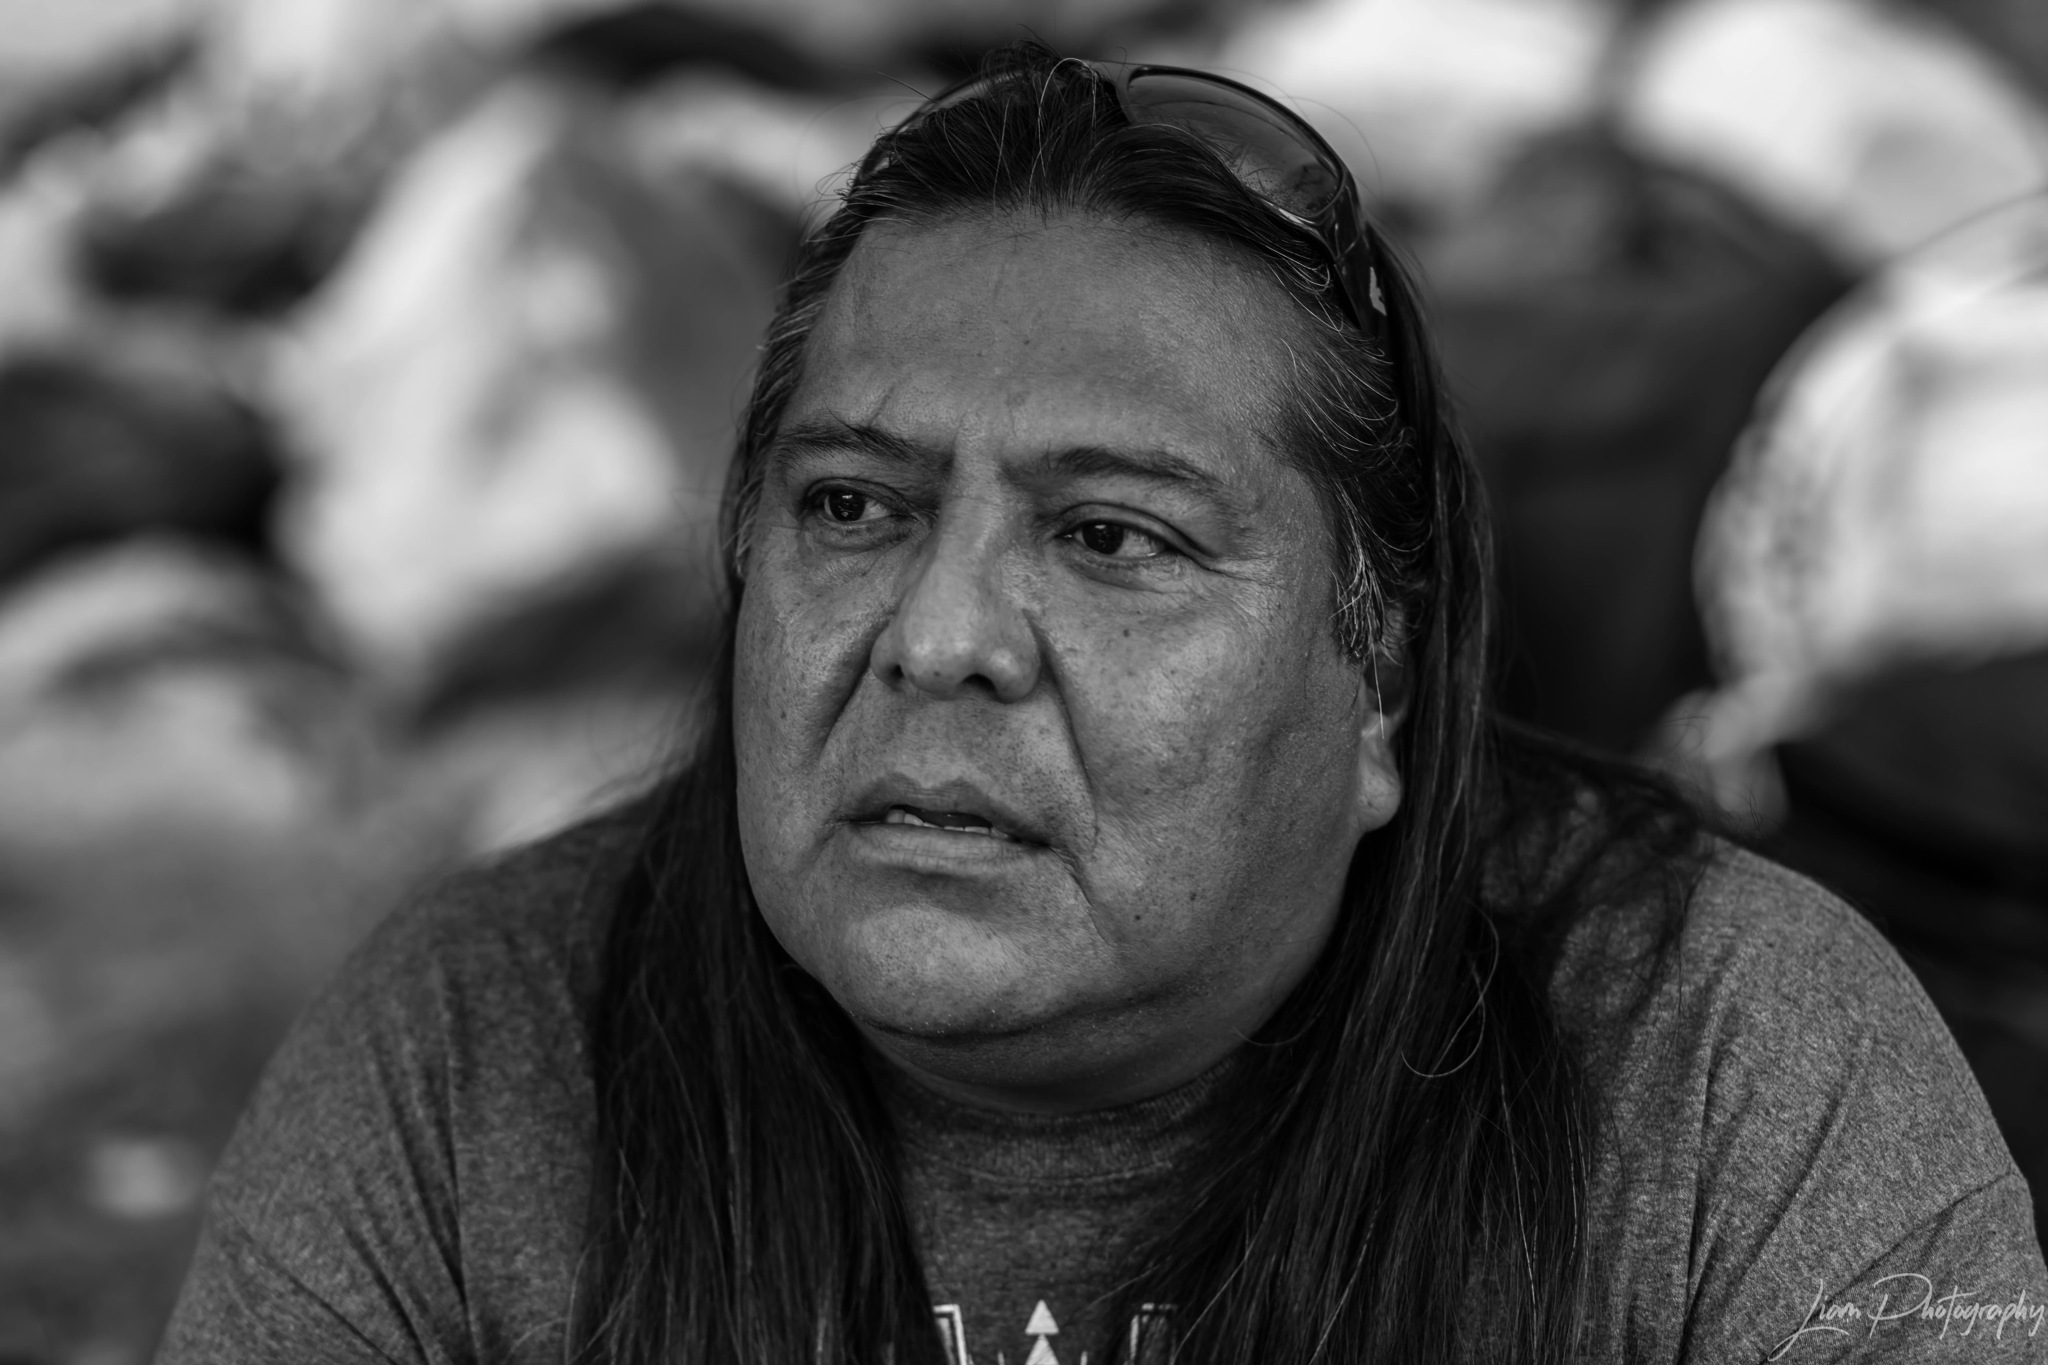 Lowery Begay by Liam Photography